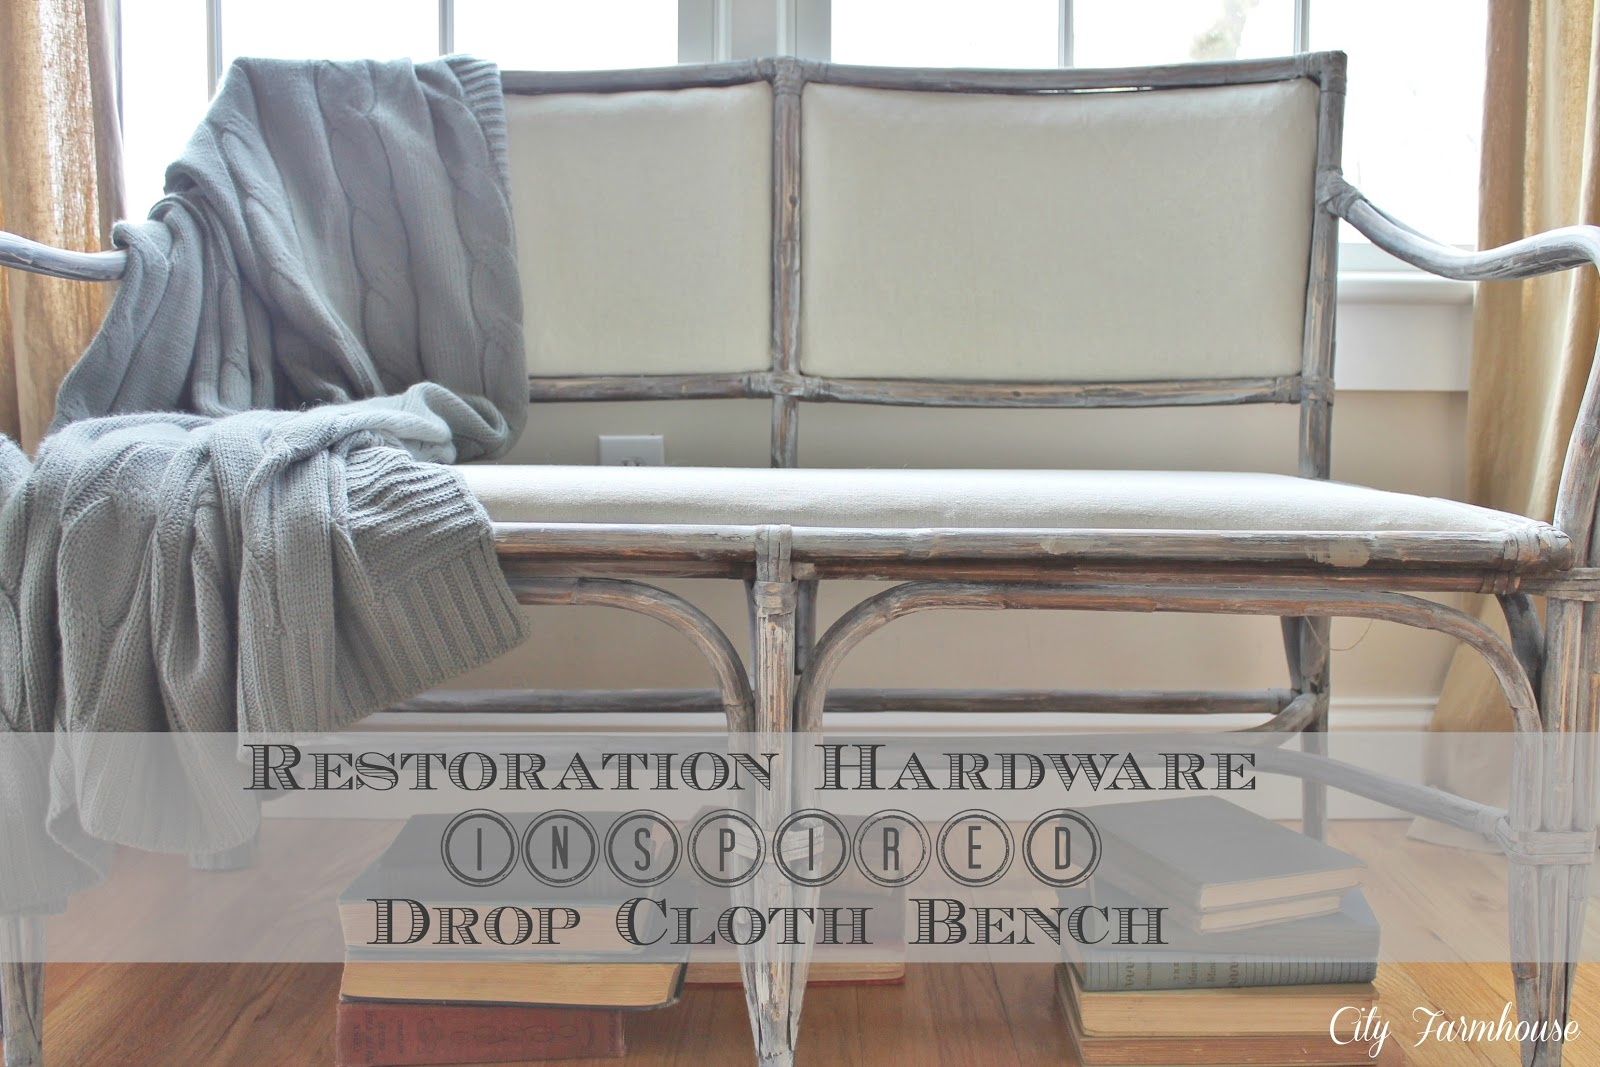 How To Get The Restoration Hardware Look Without The Cost